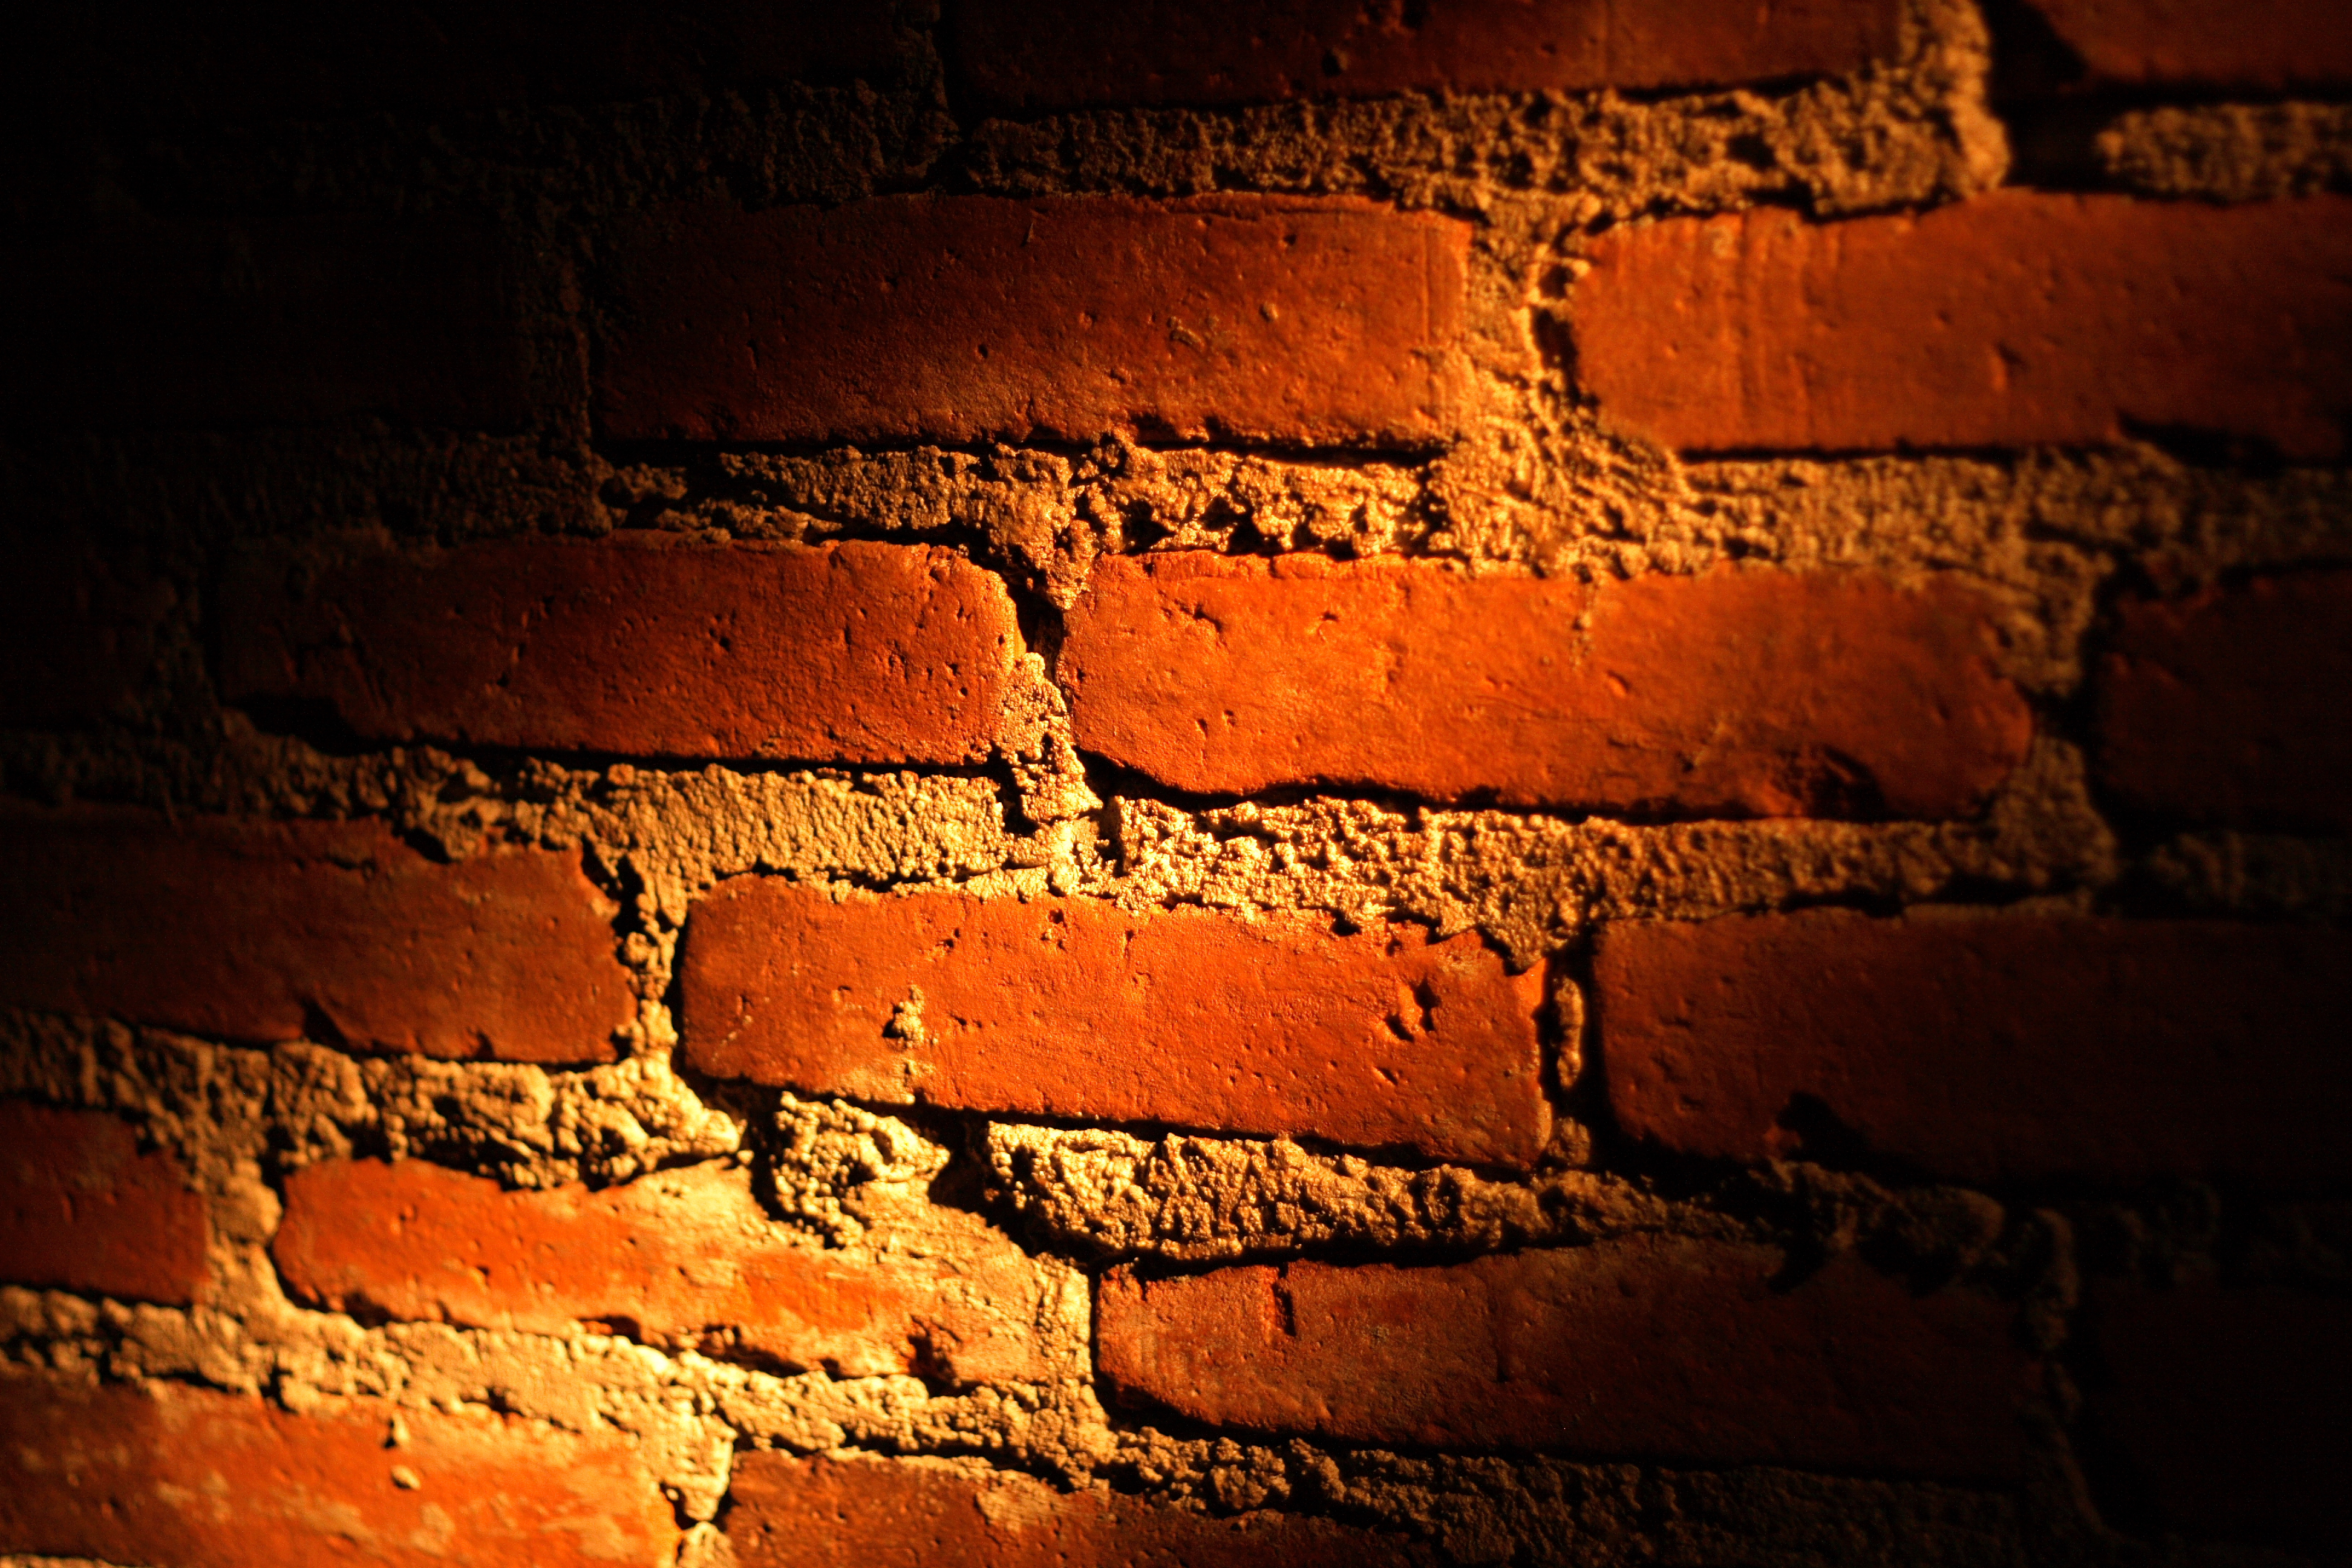 Brick Wall Light: File:Brick wall in shadow and light.jpg,Lighting